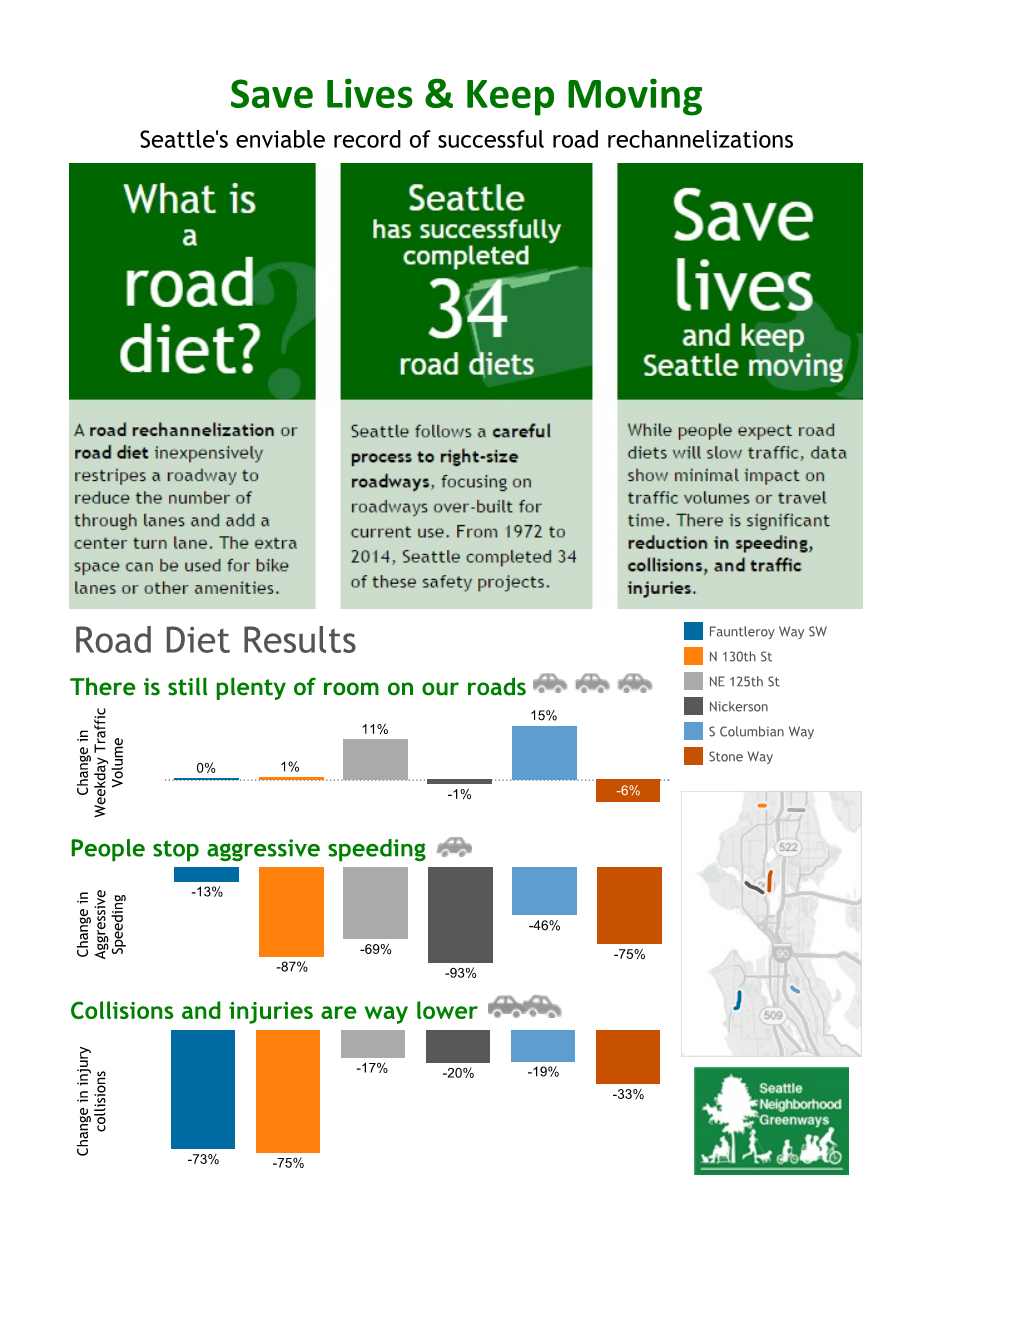 The city of Seattle has had incredible success with their Road Diet program. Substantial decreases in collisions and injuries were achieved while increasing traffic movement. Modernizing our road system has advantages for everyone.